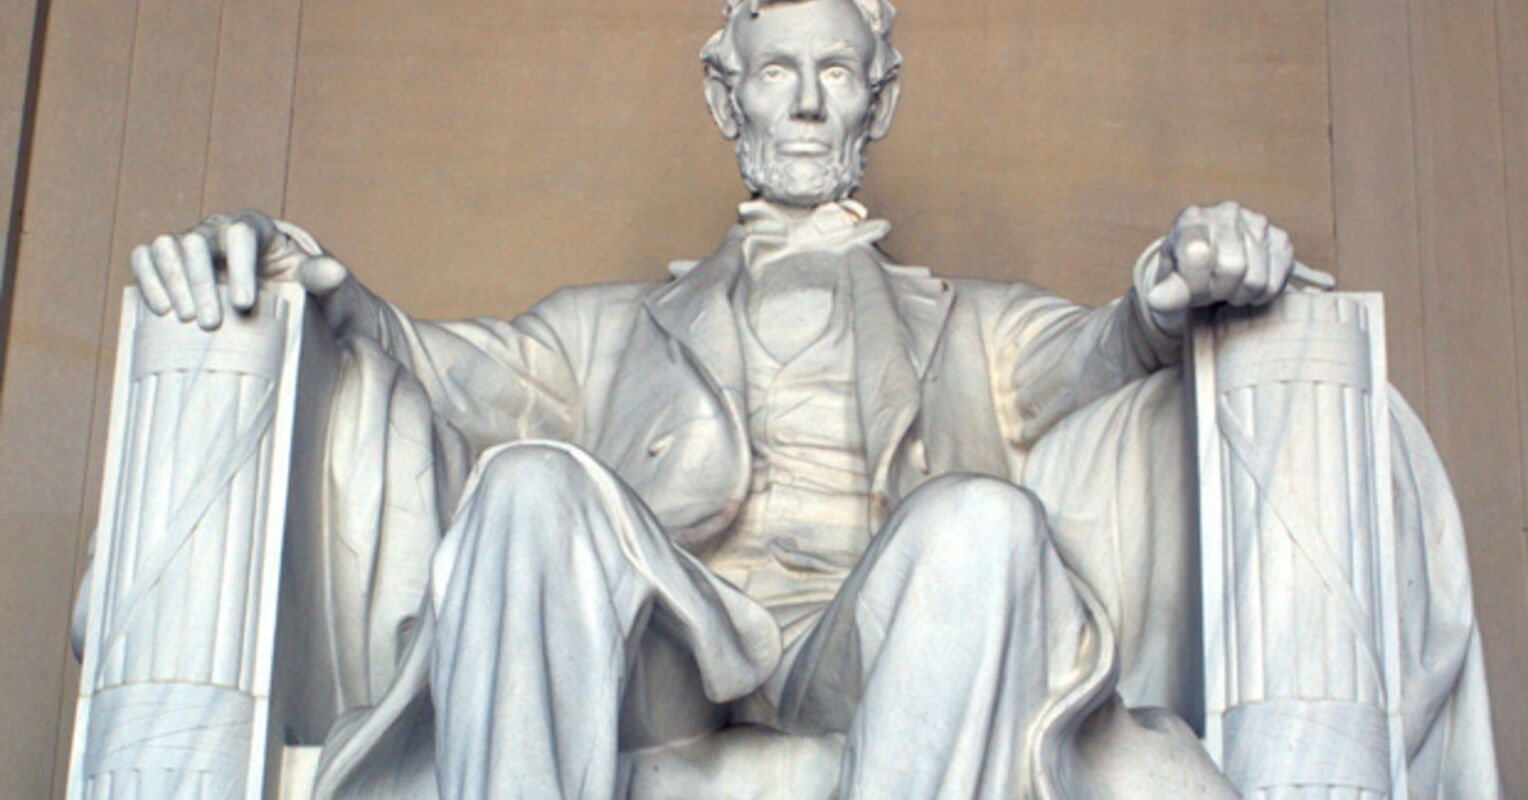 Learning Humility From Lincoln